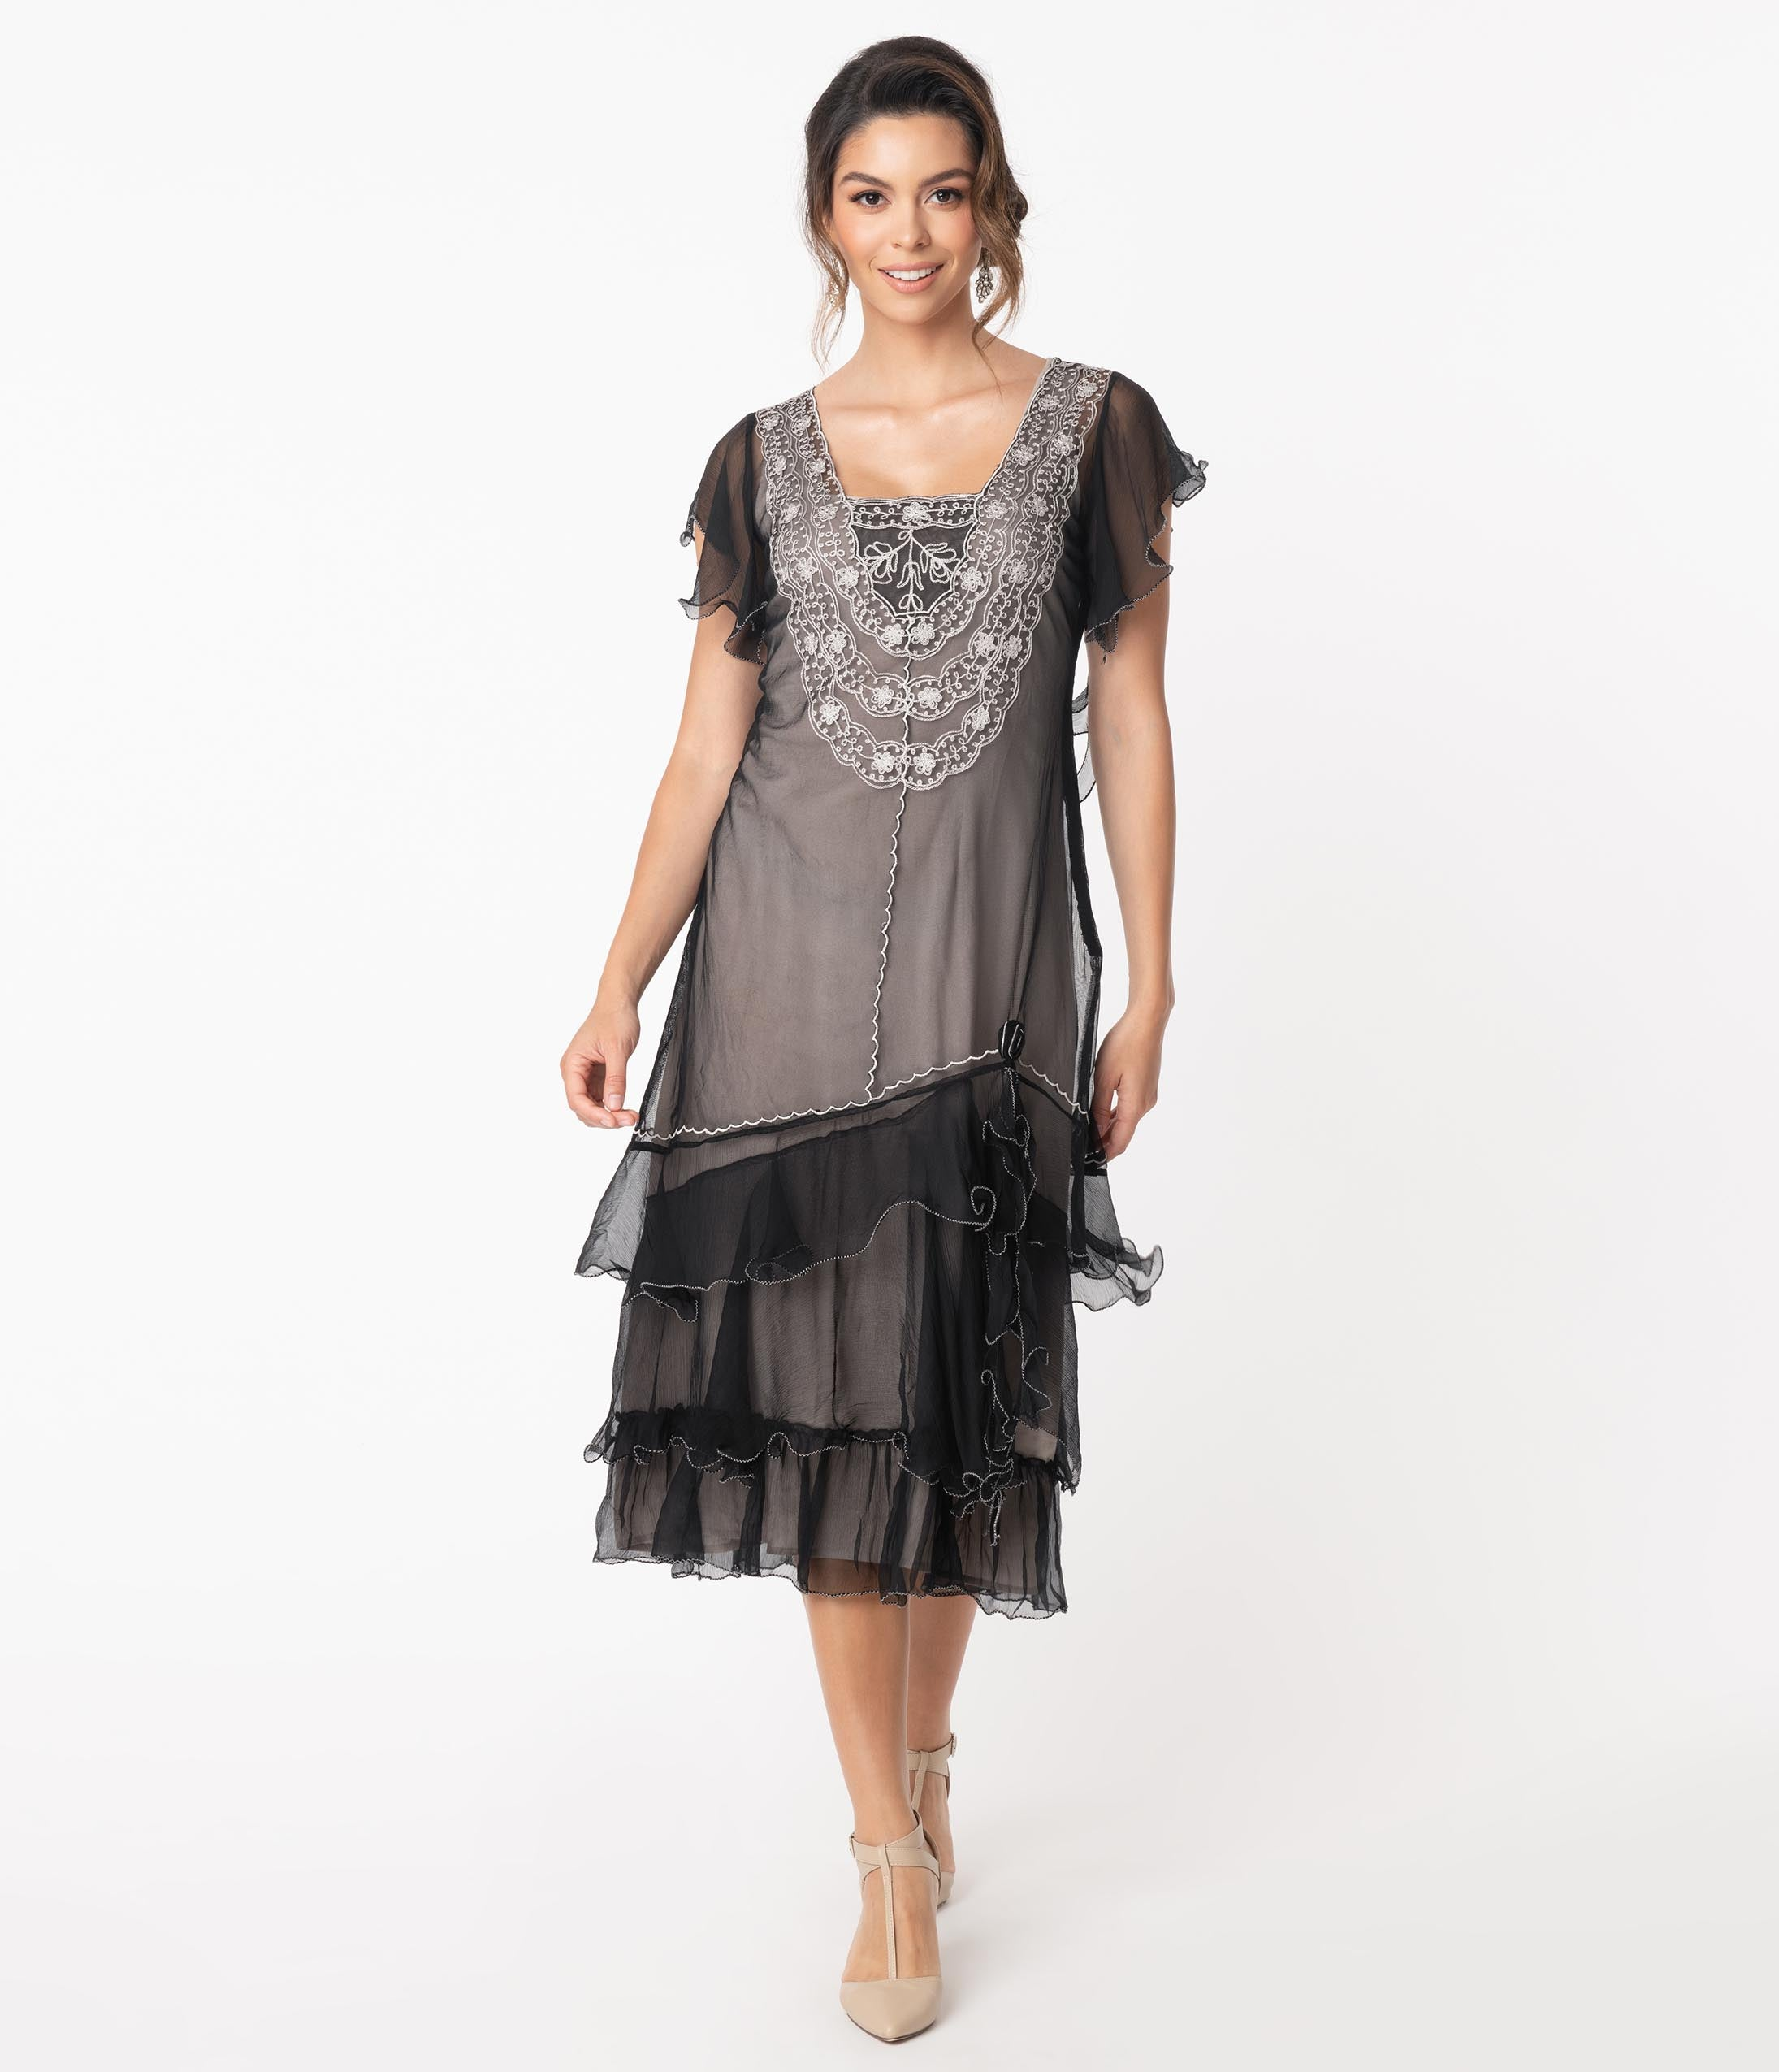 1920s Outfit Ideas: 10 Downton Abbey Inspired Costumes Vintage Style Black With Grey Alex Flapper Dress $252.00 AT vintagedancer.com